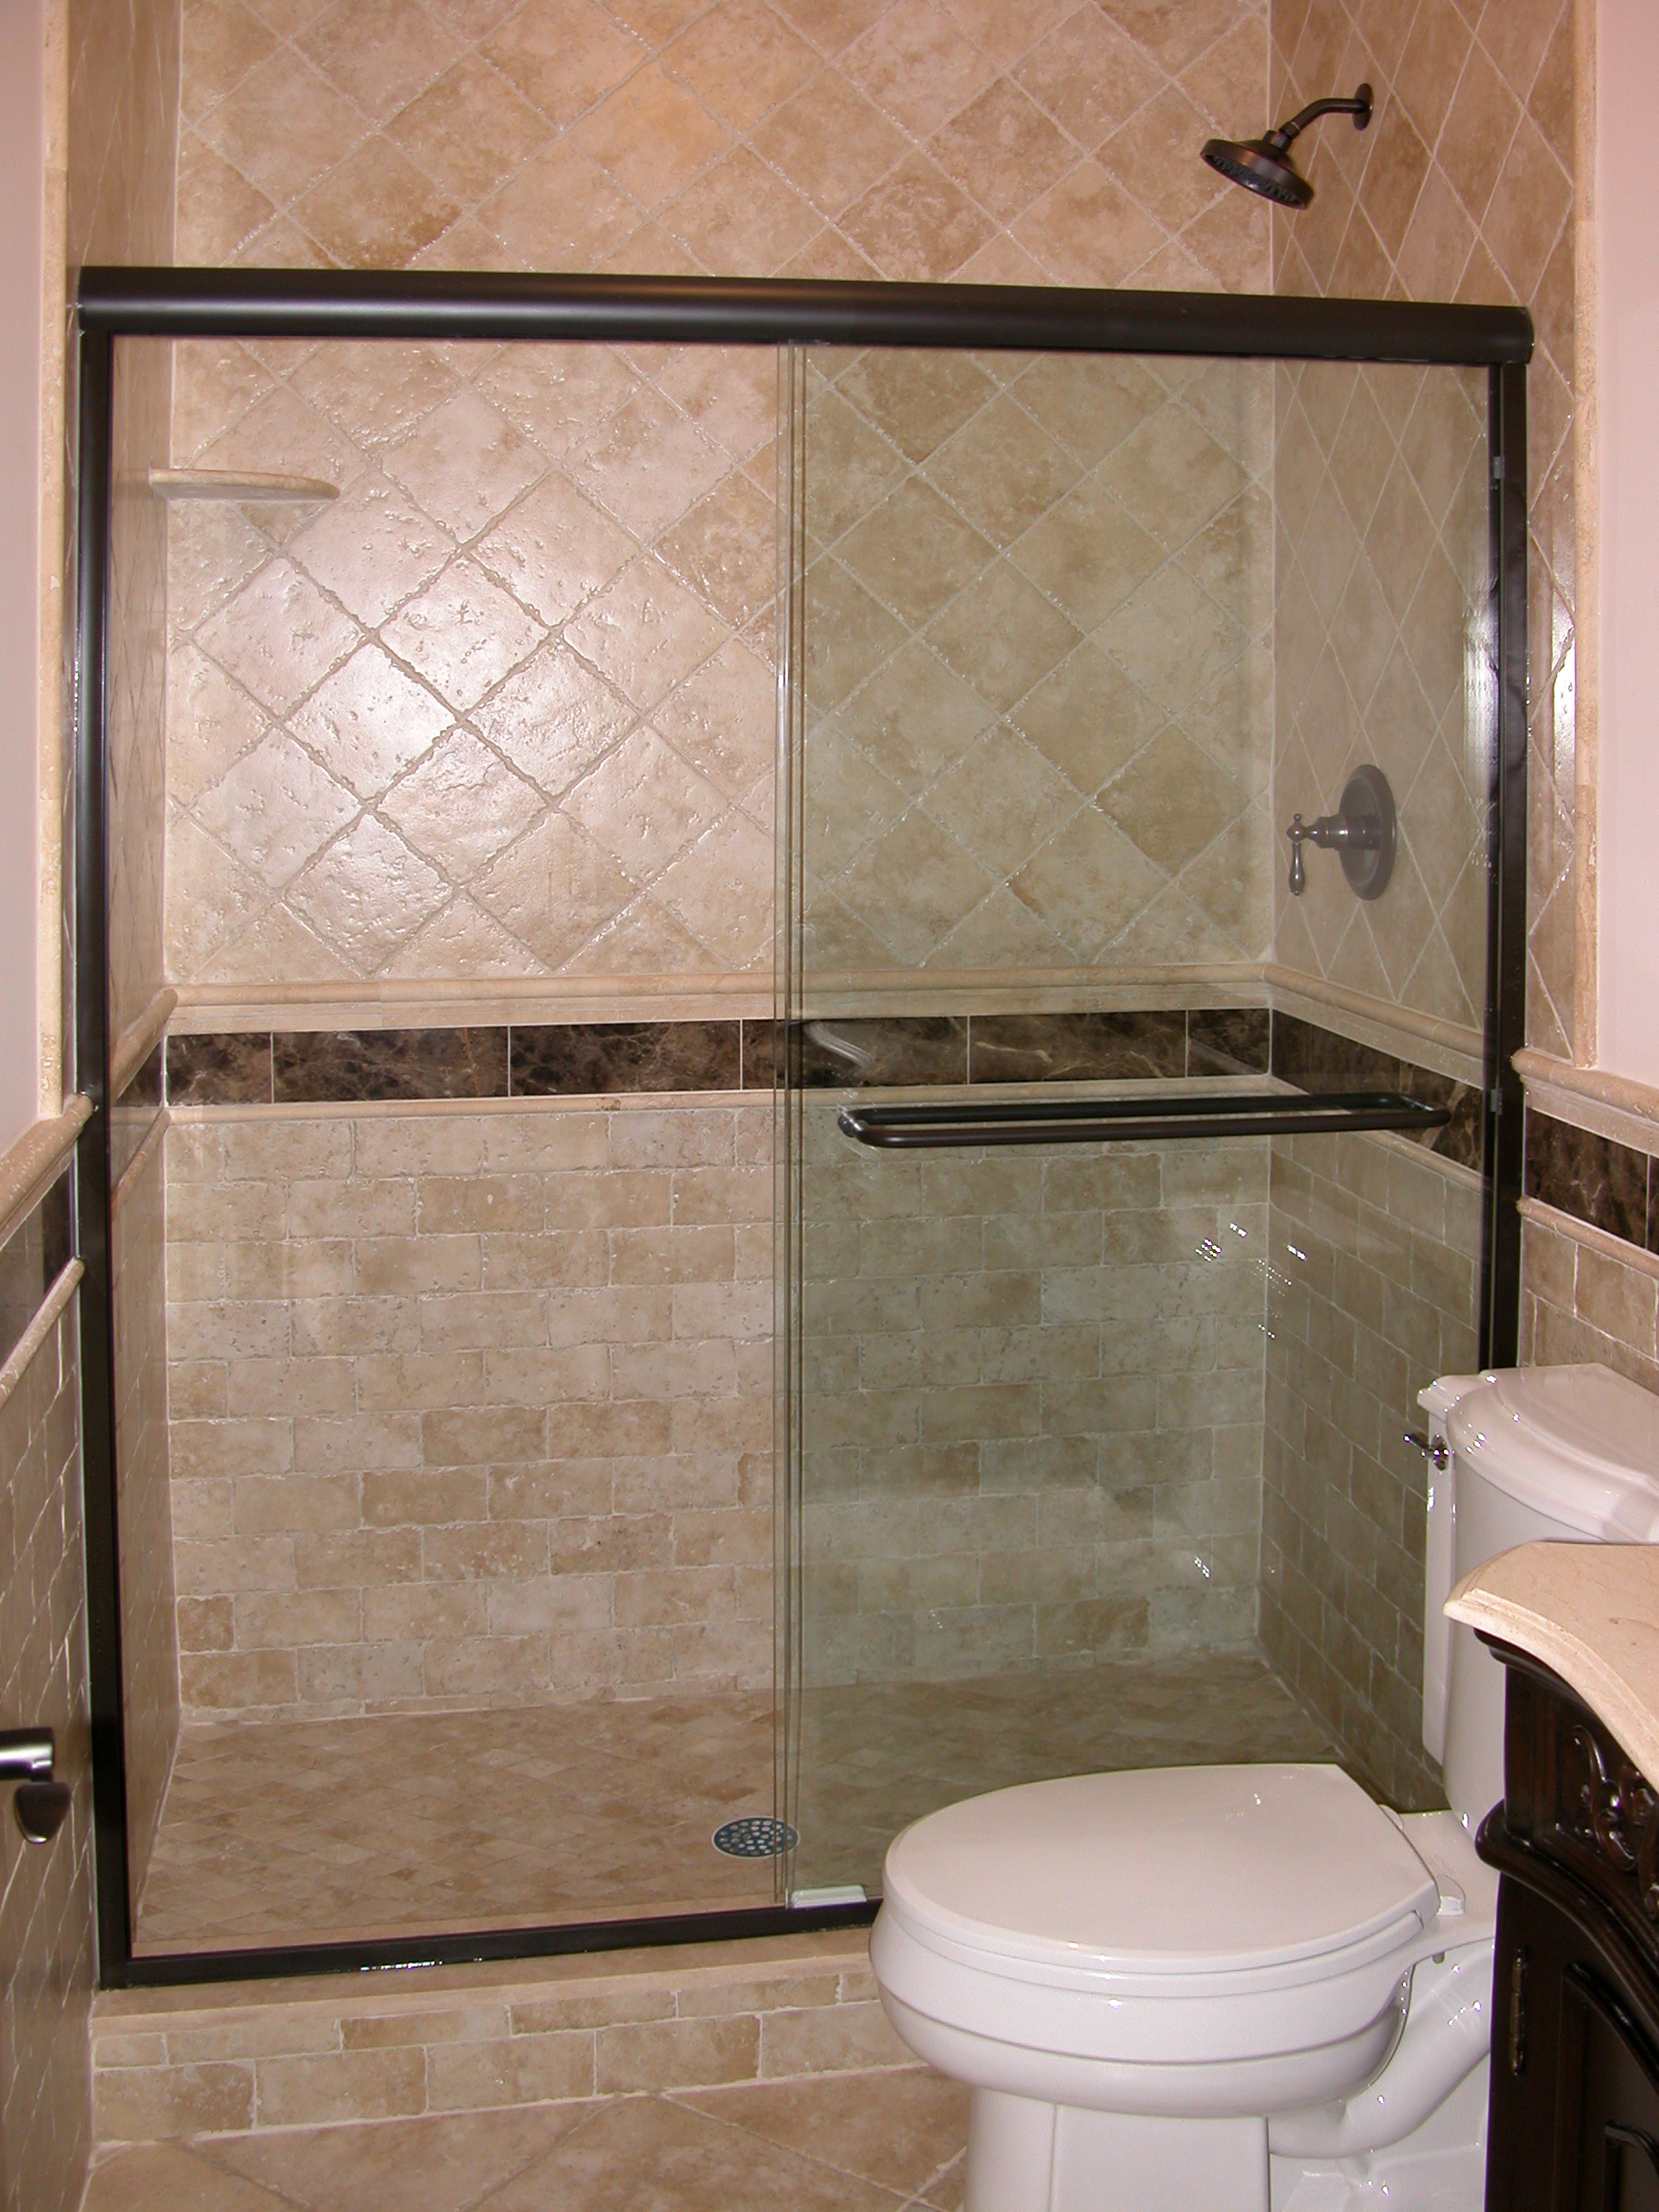 11 - Sliding shower door